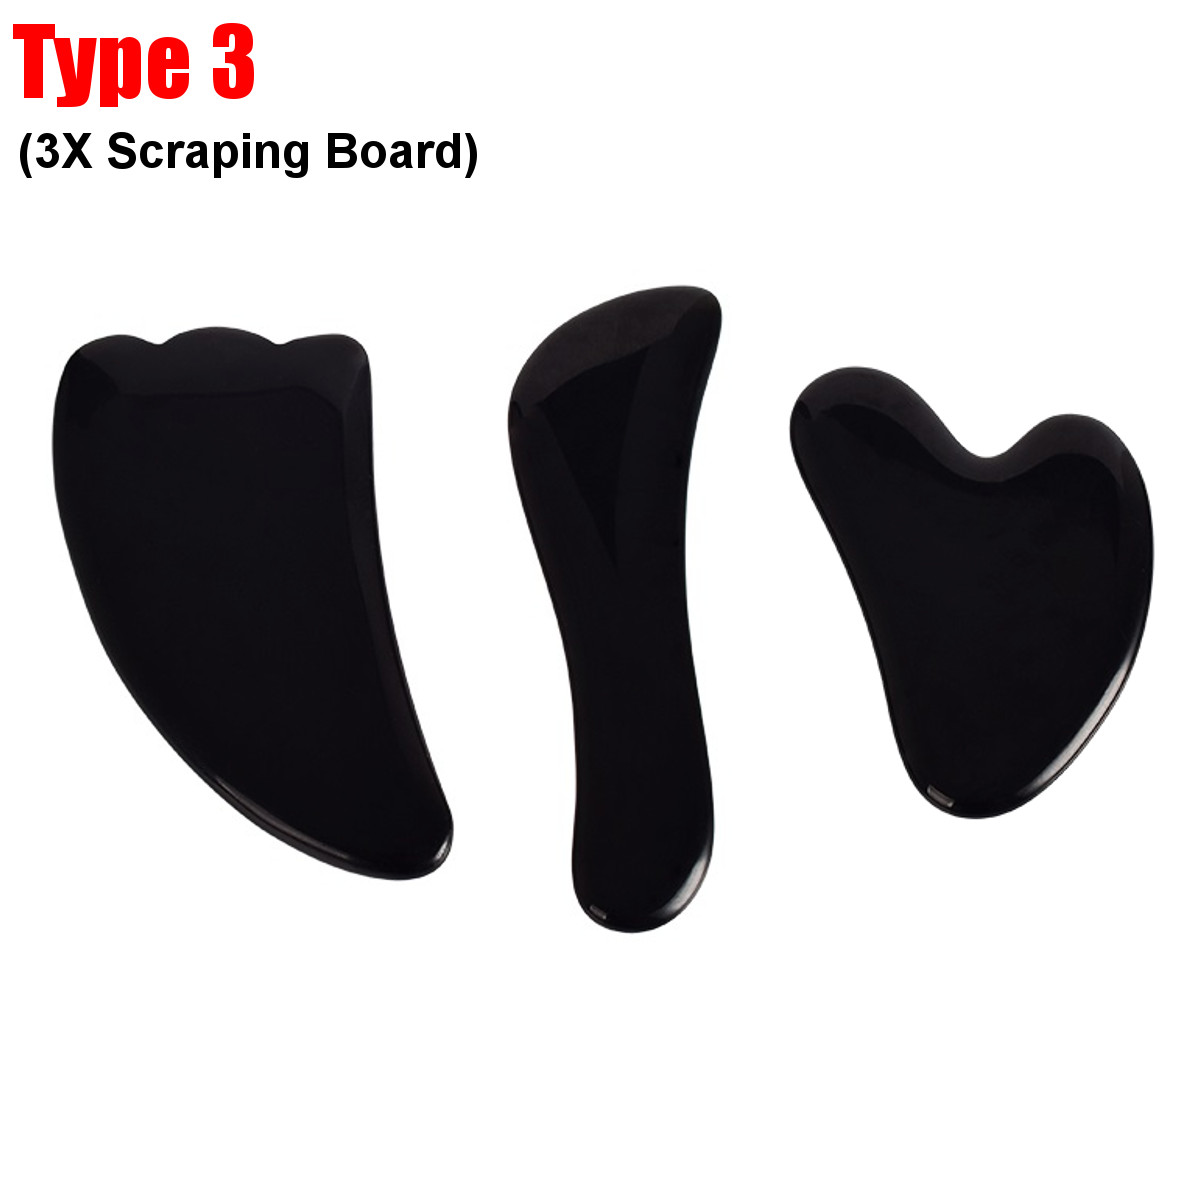 2-3X Natural Guasha Facial Jade Roller Face+Body Gua Sha Board Massager Tool Manual Massager